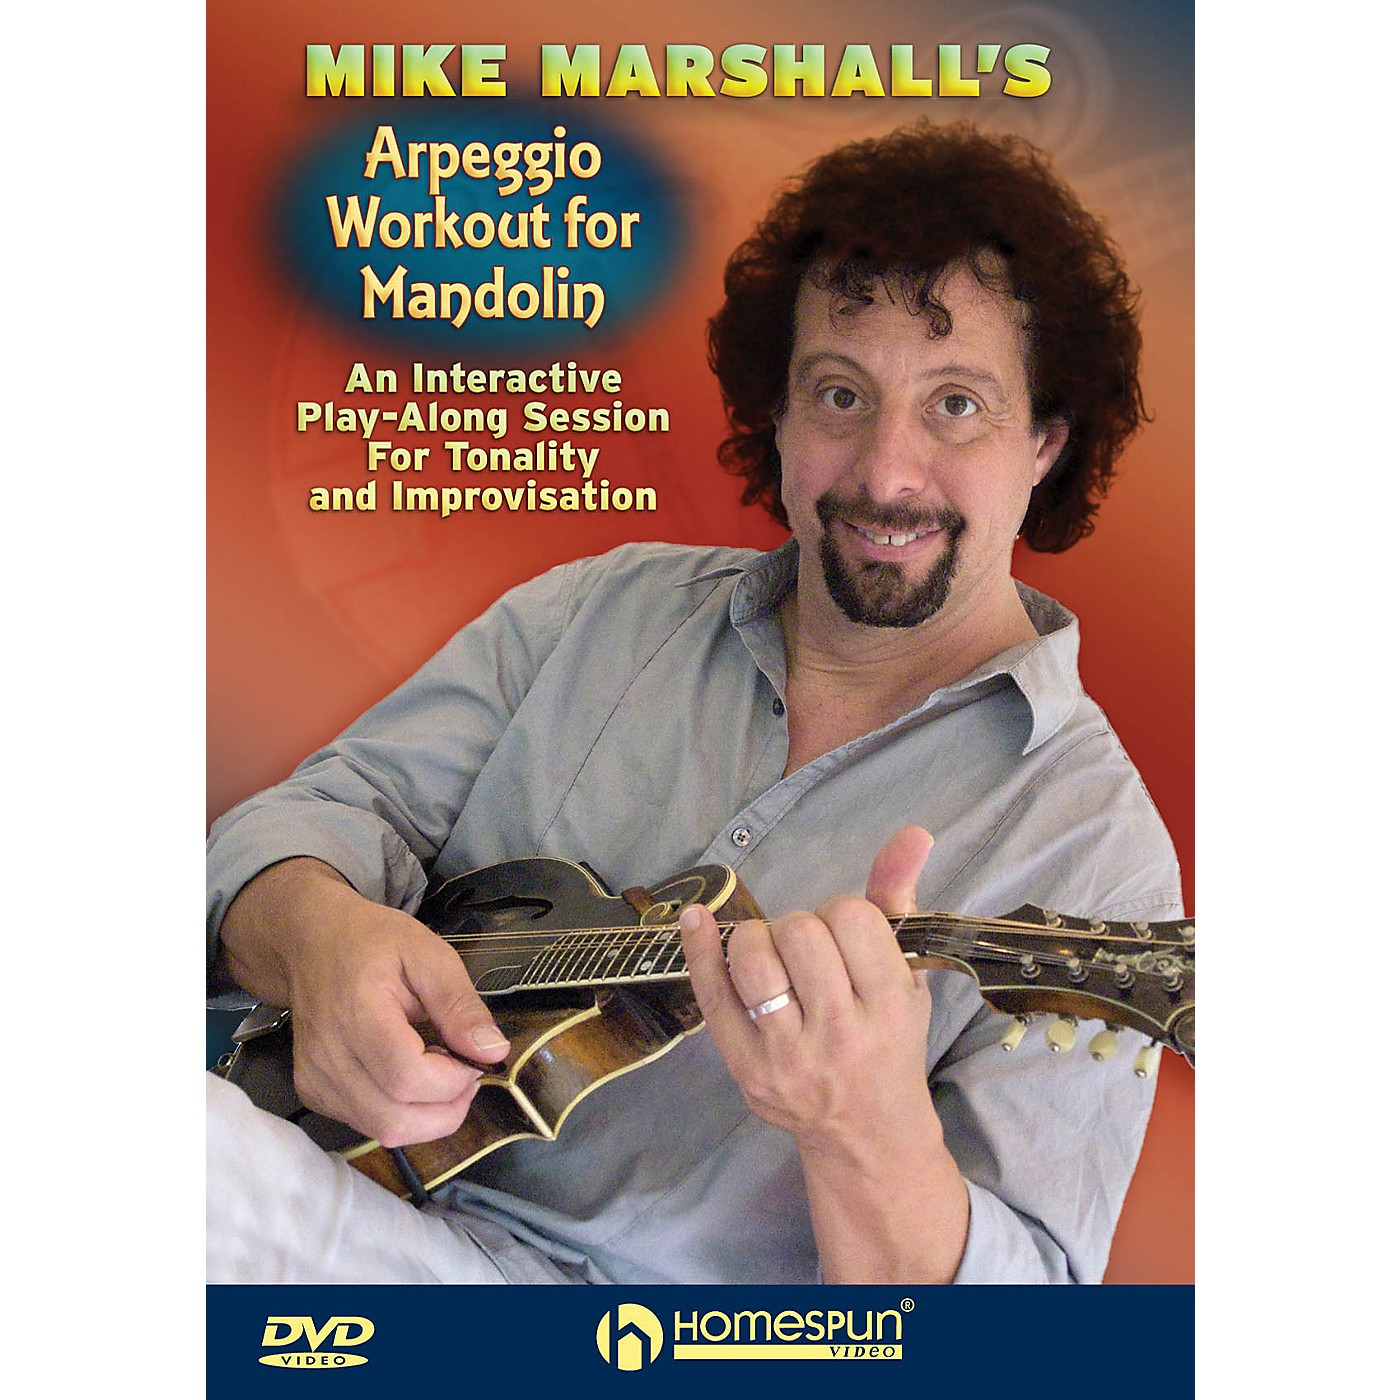 Homespun Mike Marshall's Arpeggio Workout for Mandolin Homespun Tapes Series DVD Performed by Mike Marshall thumbnail